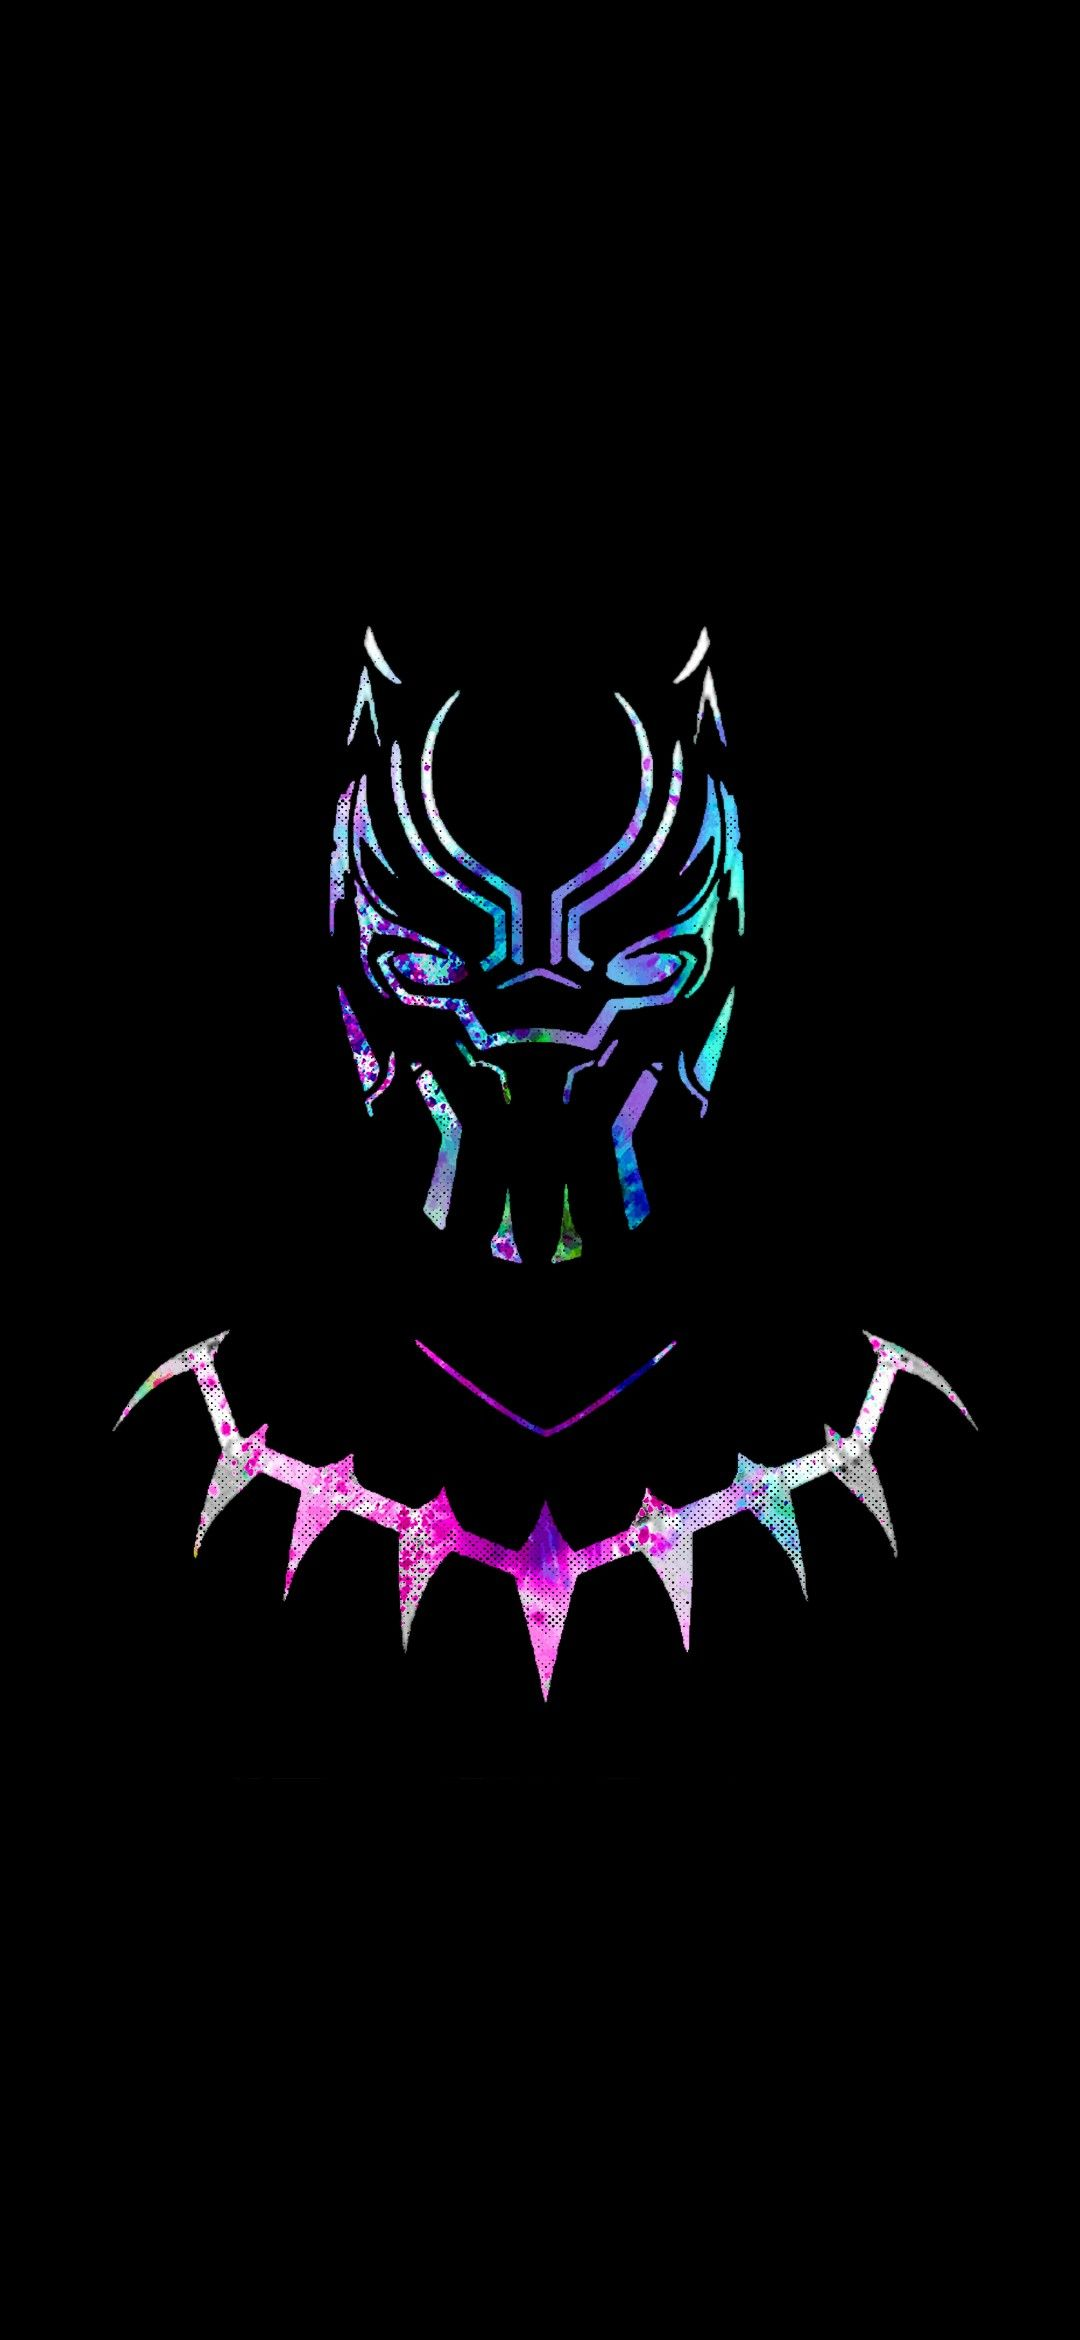 Black Panther Colored Black Panther Tattoo Black Panther Marvel Black Panther Art